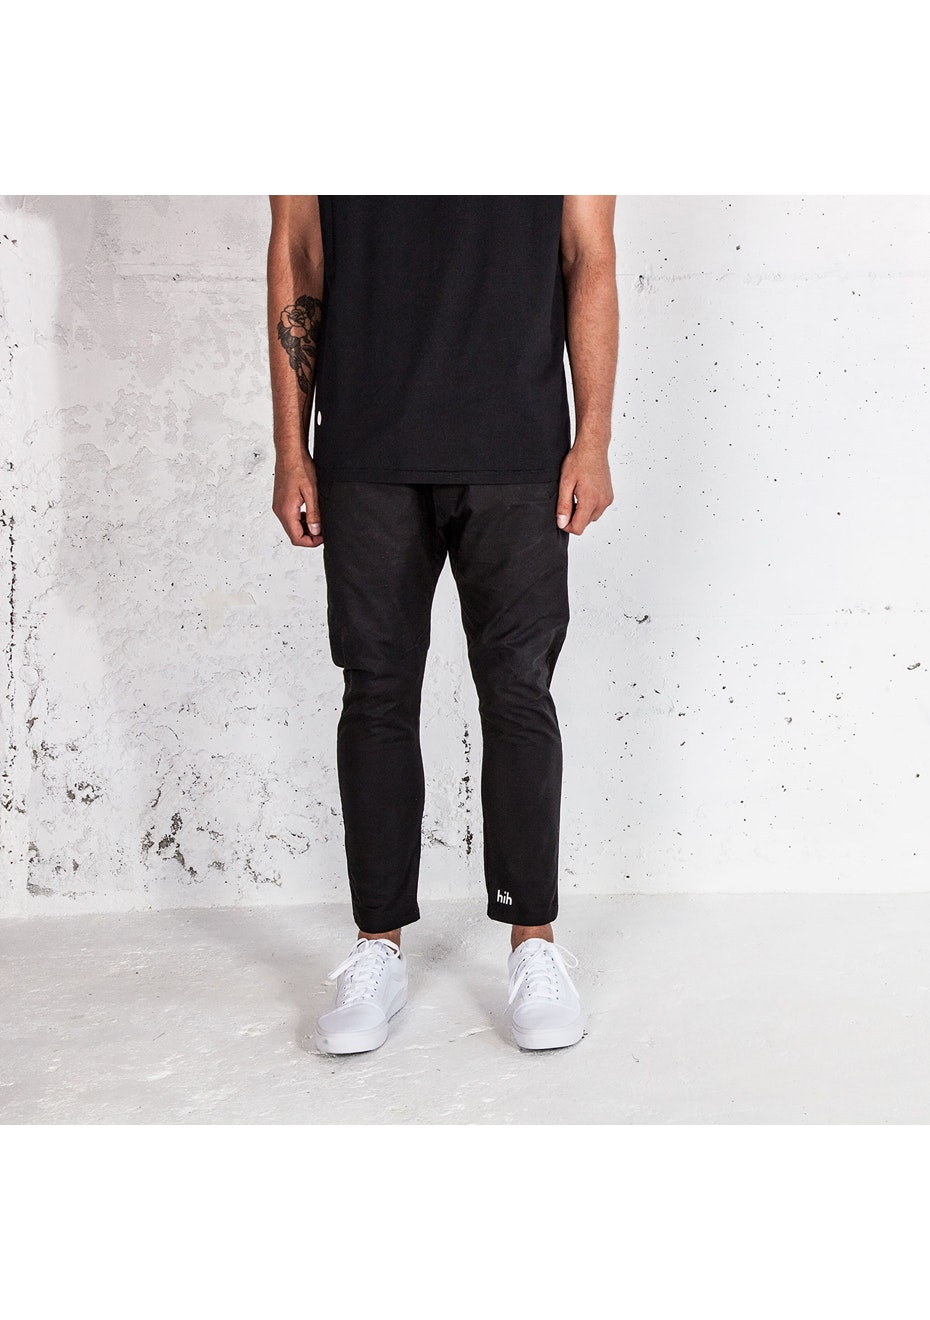 hih - Yes Pant - Black With Black